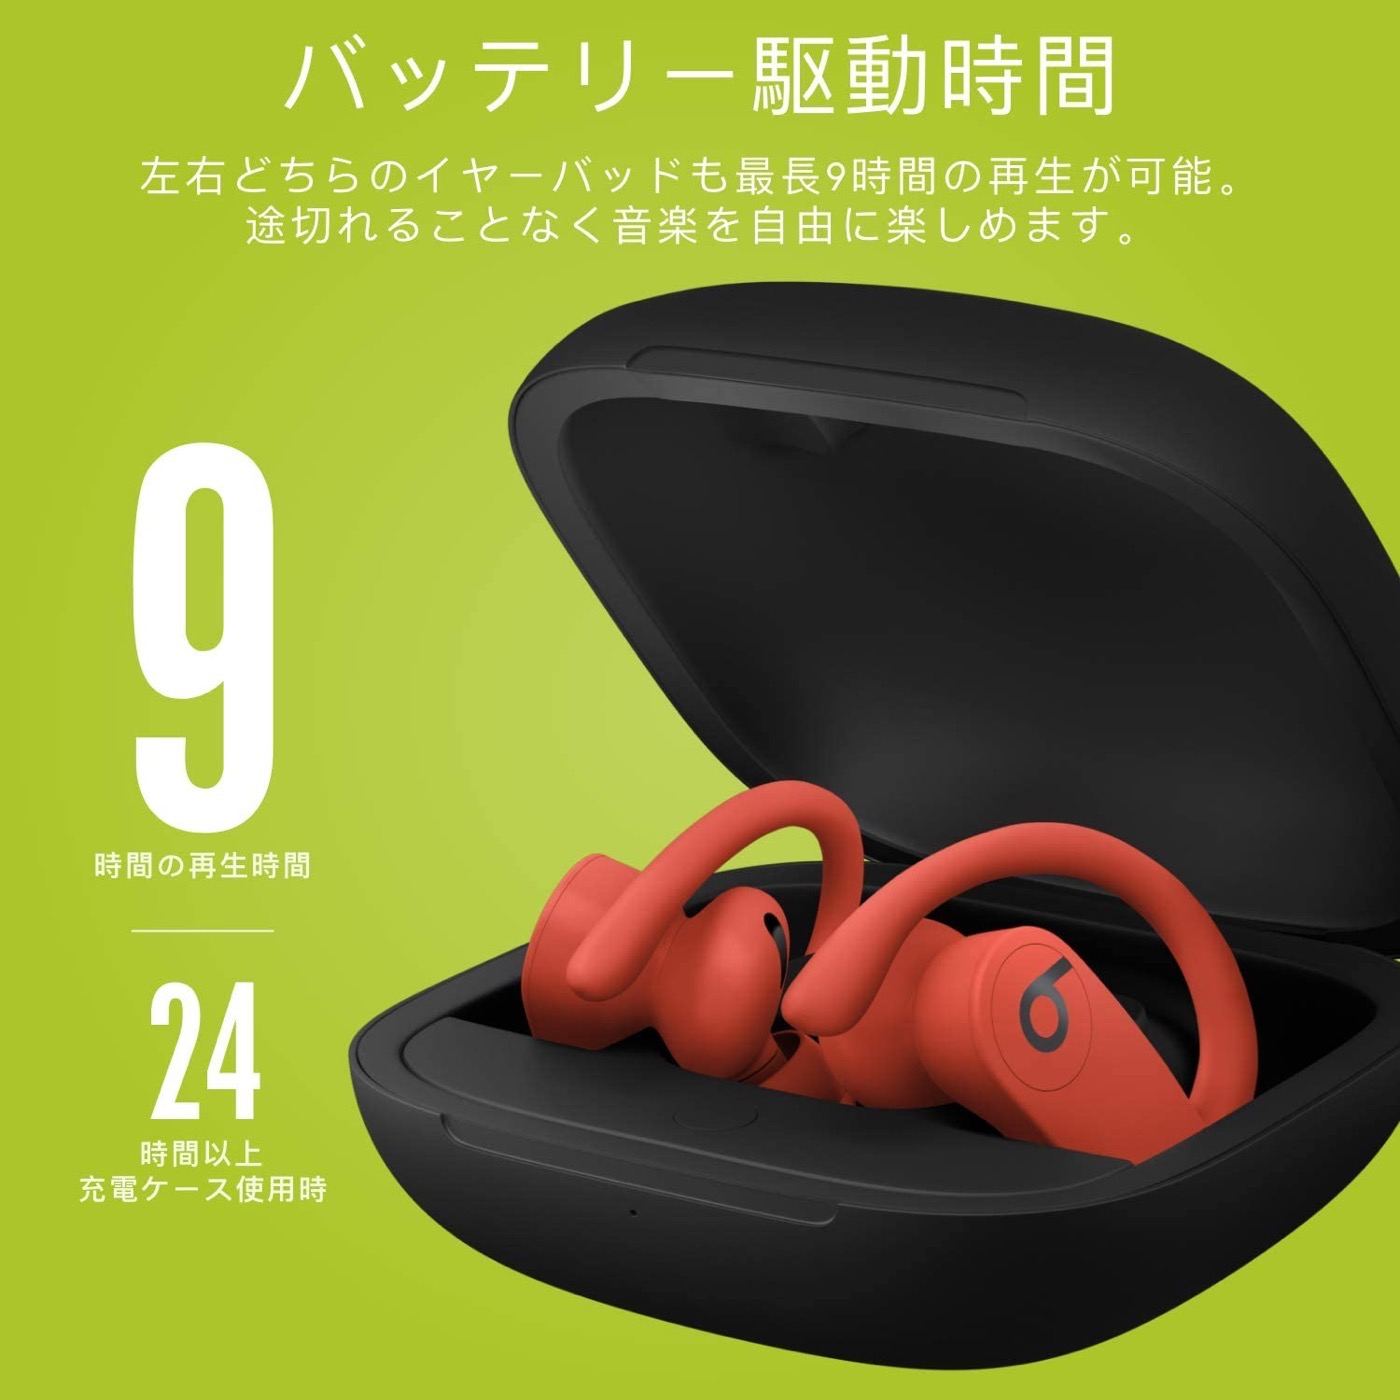 PowerbeatsPro newcolor 01